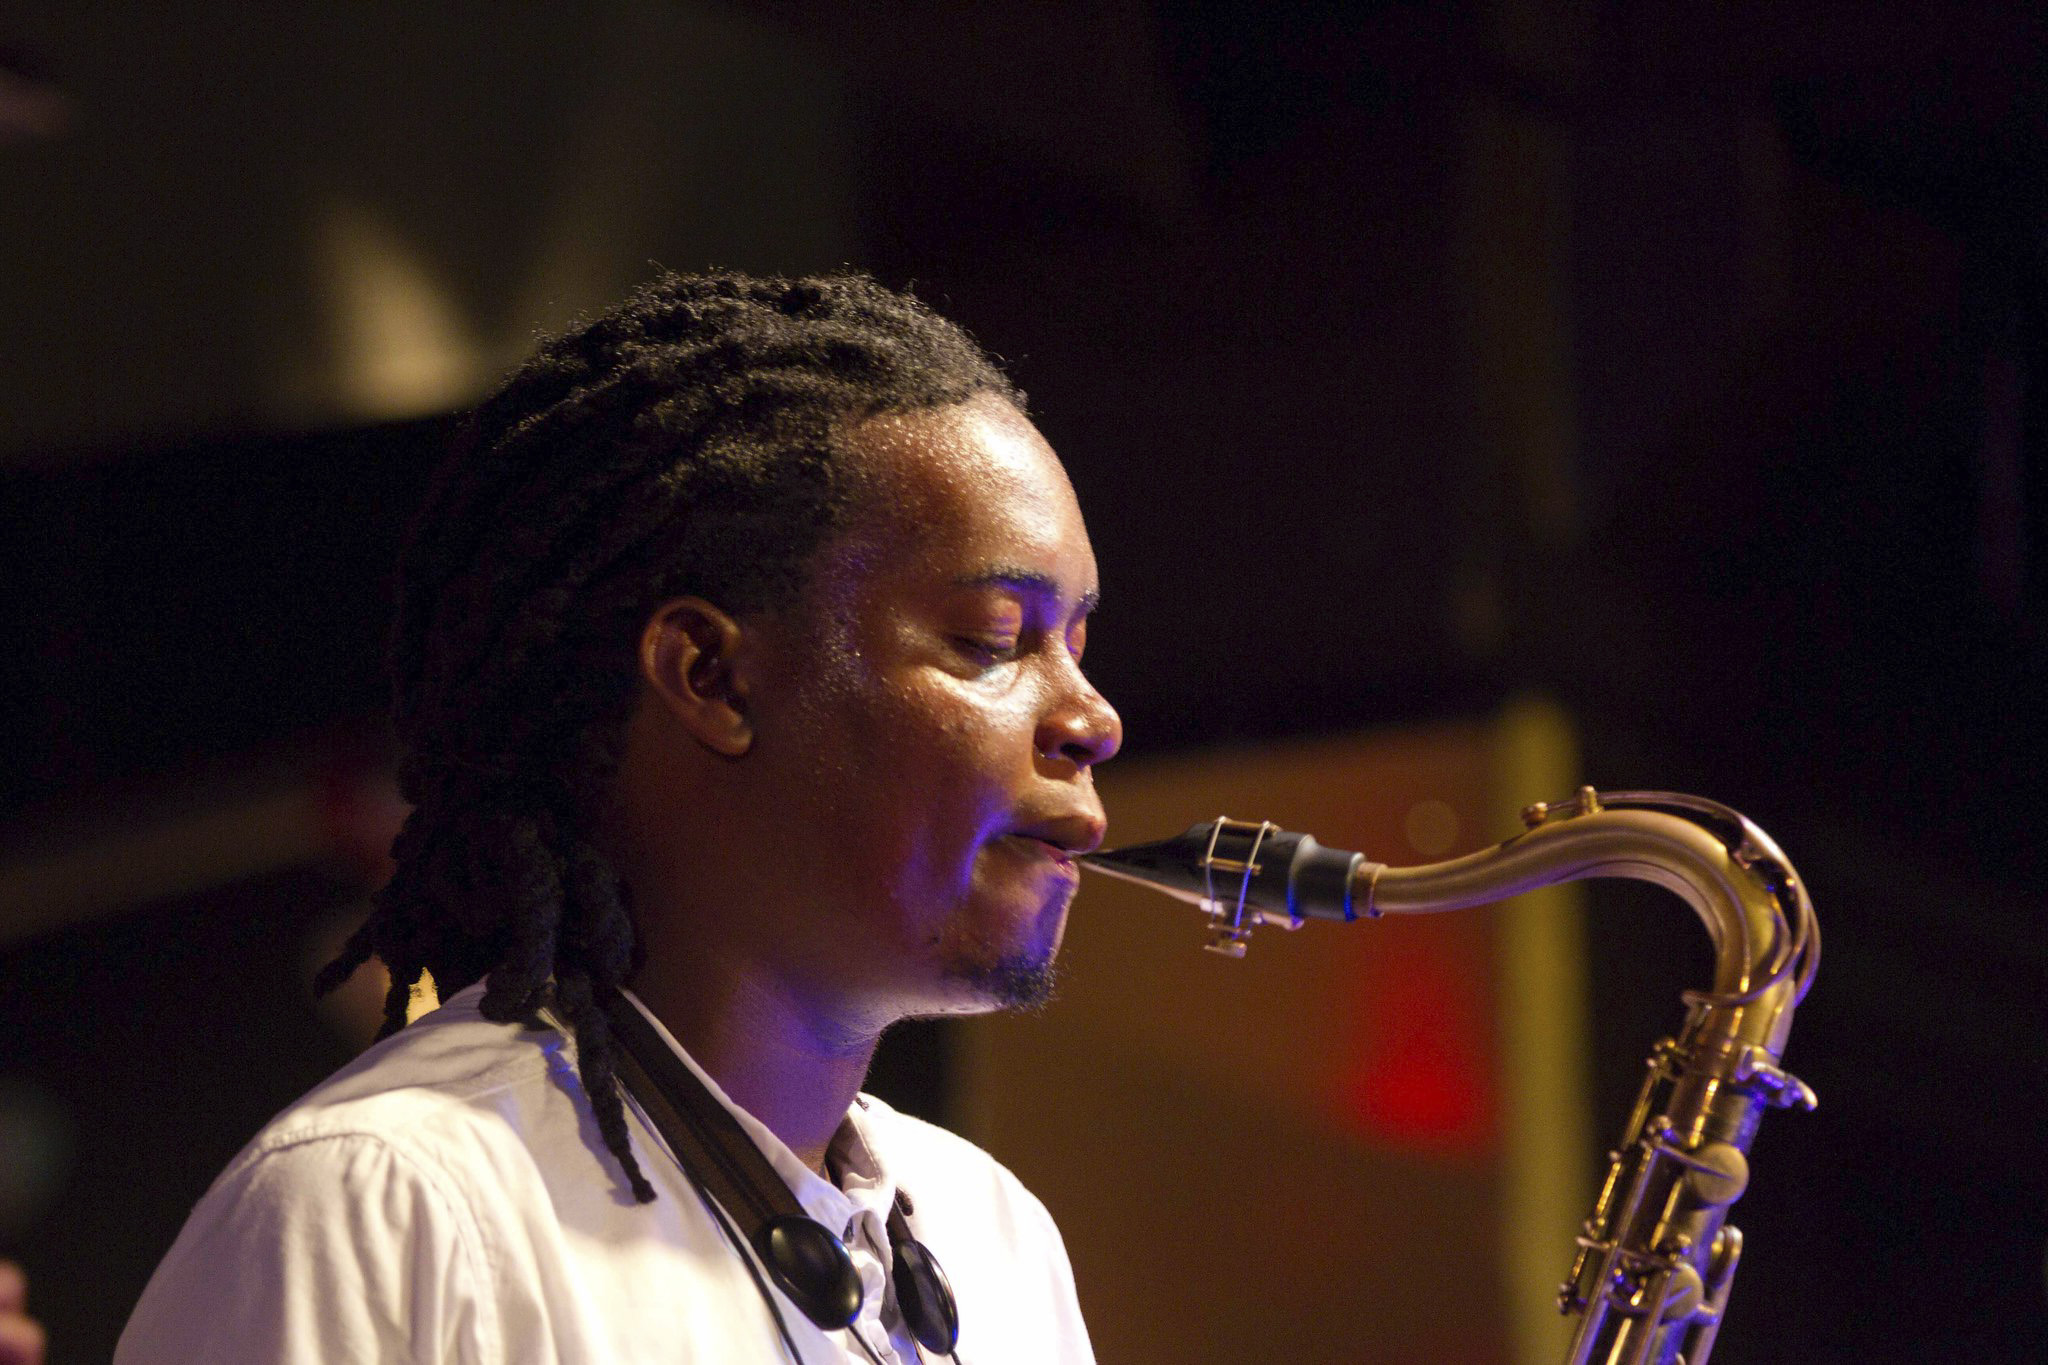 Undated: Saxophonist and composer Linda Sikhakhane. (Photograph supplied)